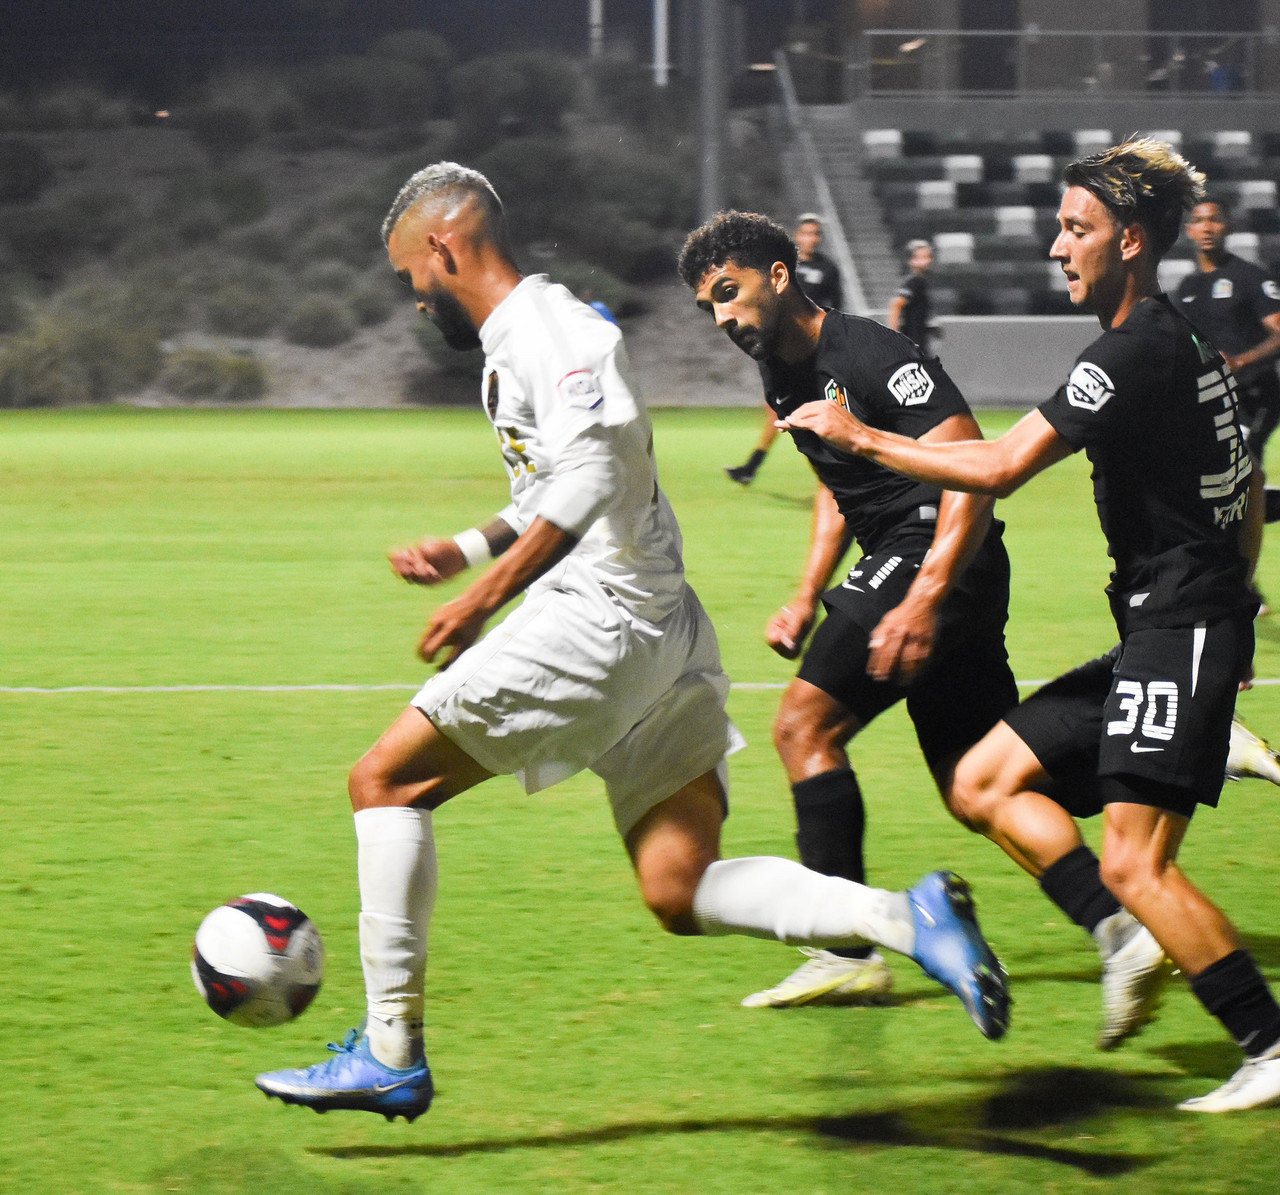 Los Angeles Force 1-0 Chicago House AC: LA wins an ugly one